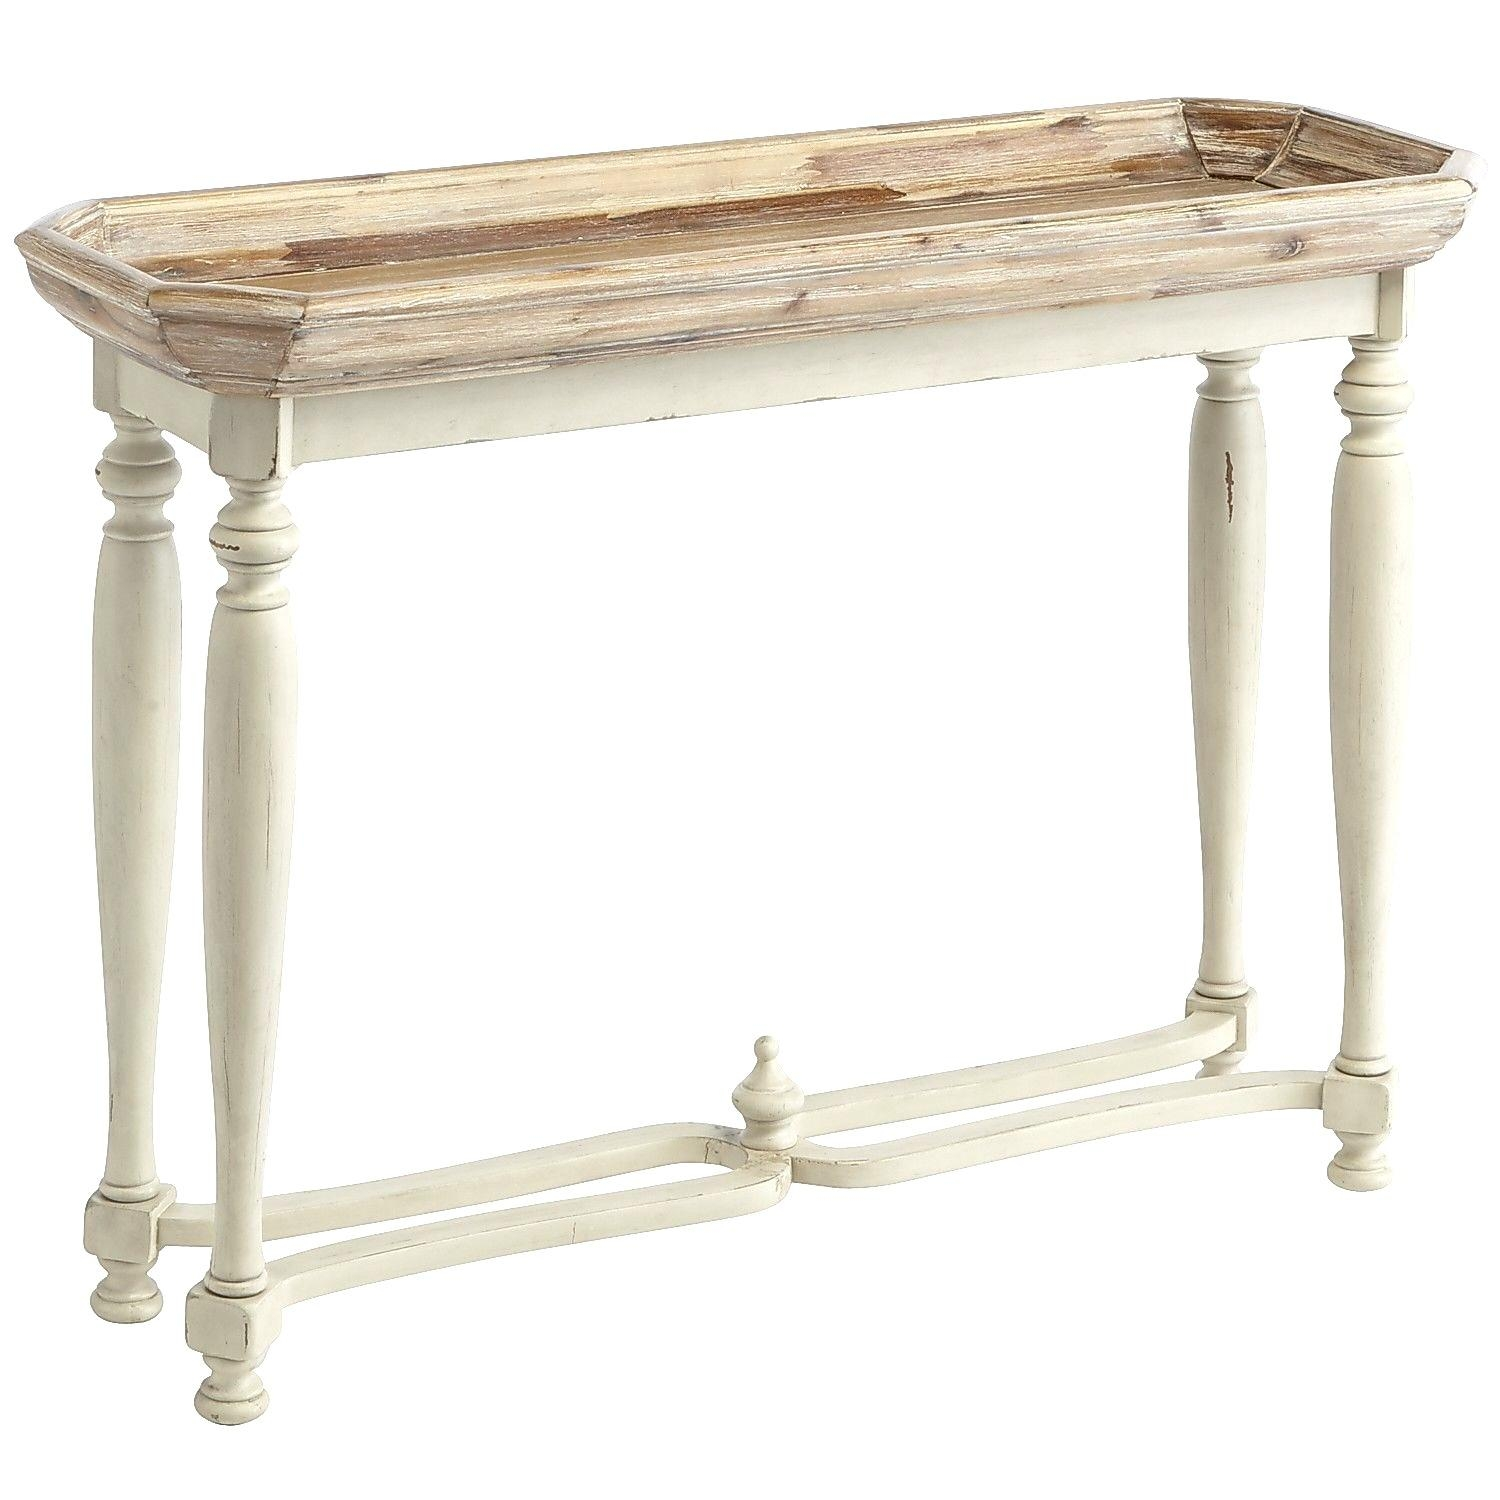 Bedroom : Knockout Console Sofa Tables Pier One Side Table Imports Regarding Pier One Sofa Tables (Image 1 of 20)